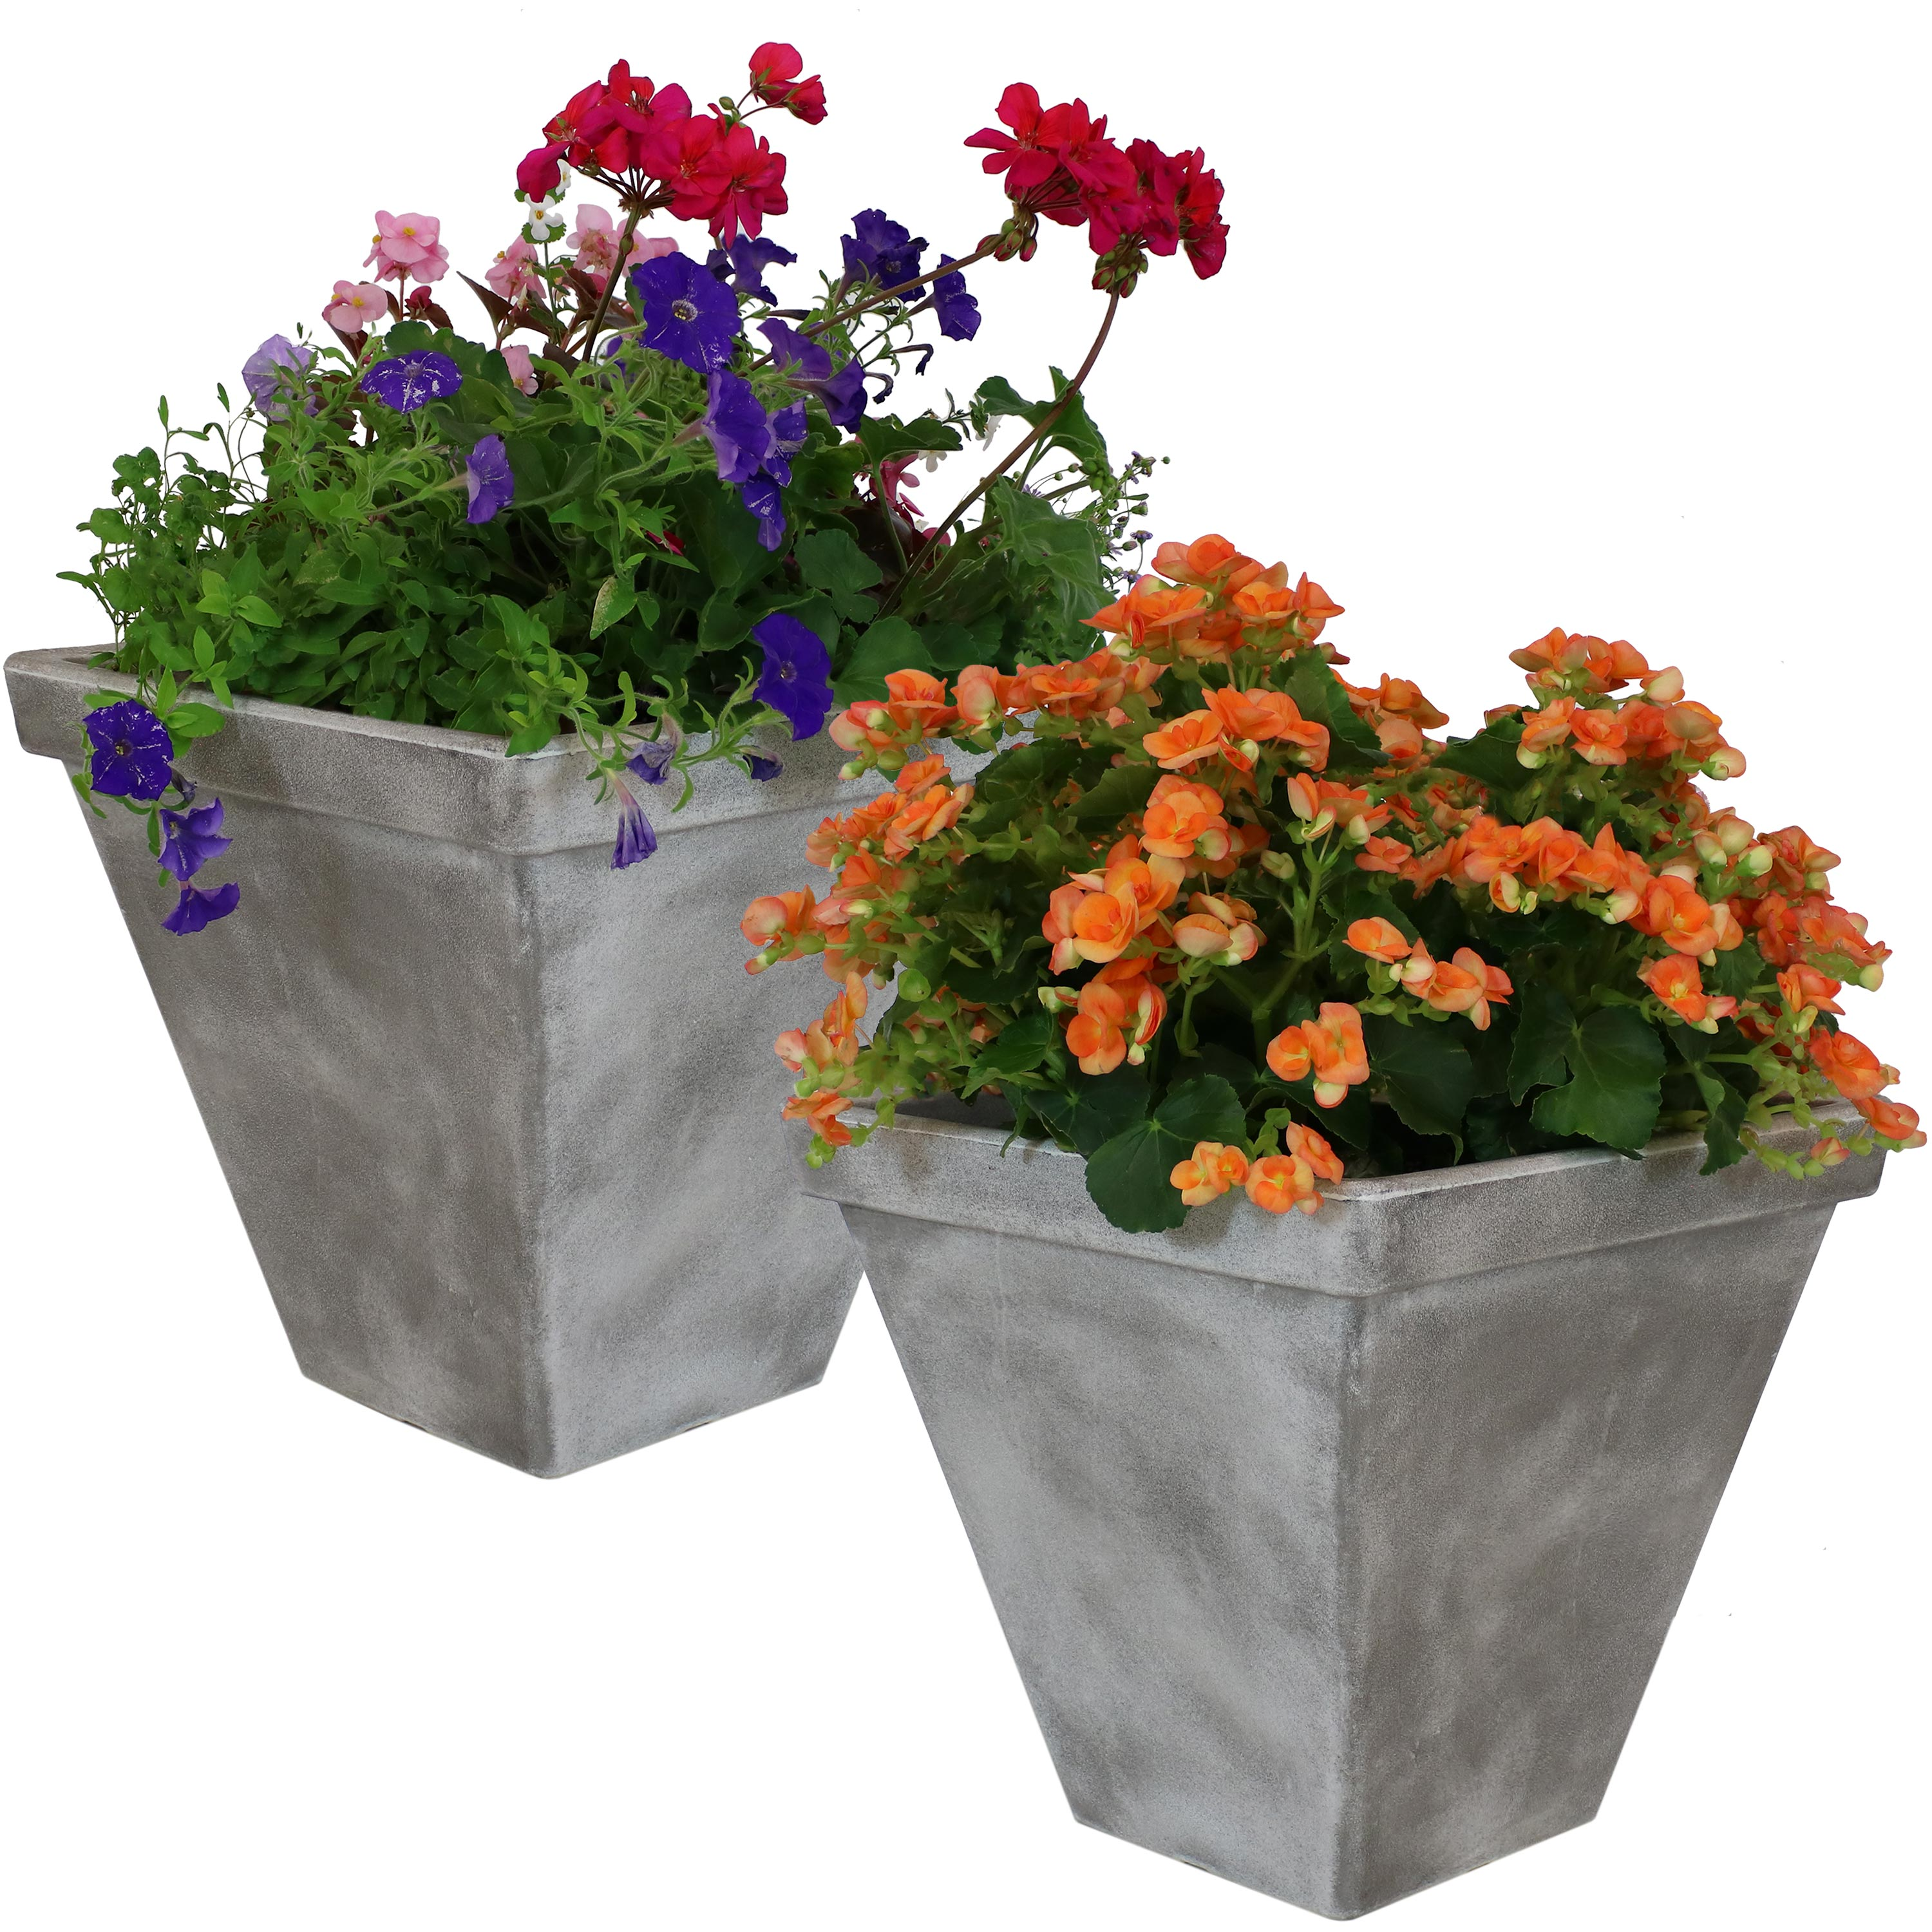 1394 Product Image